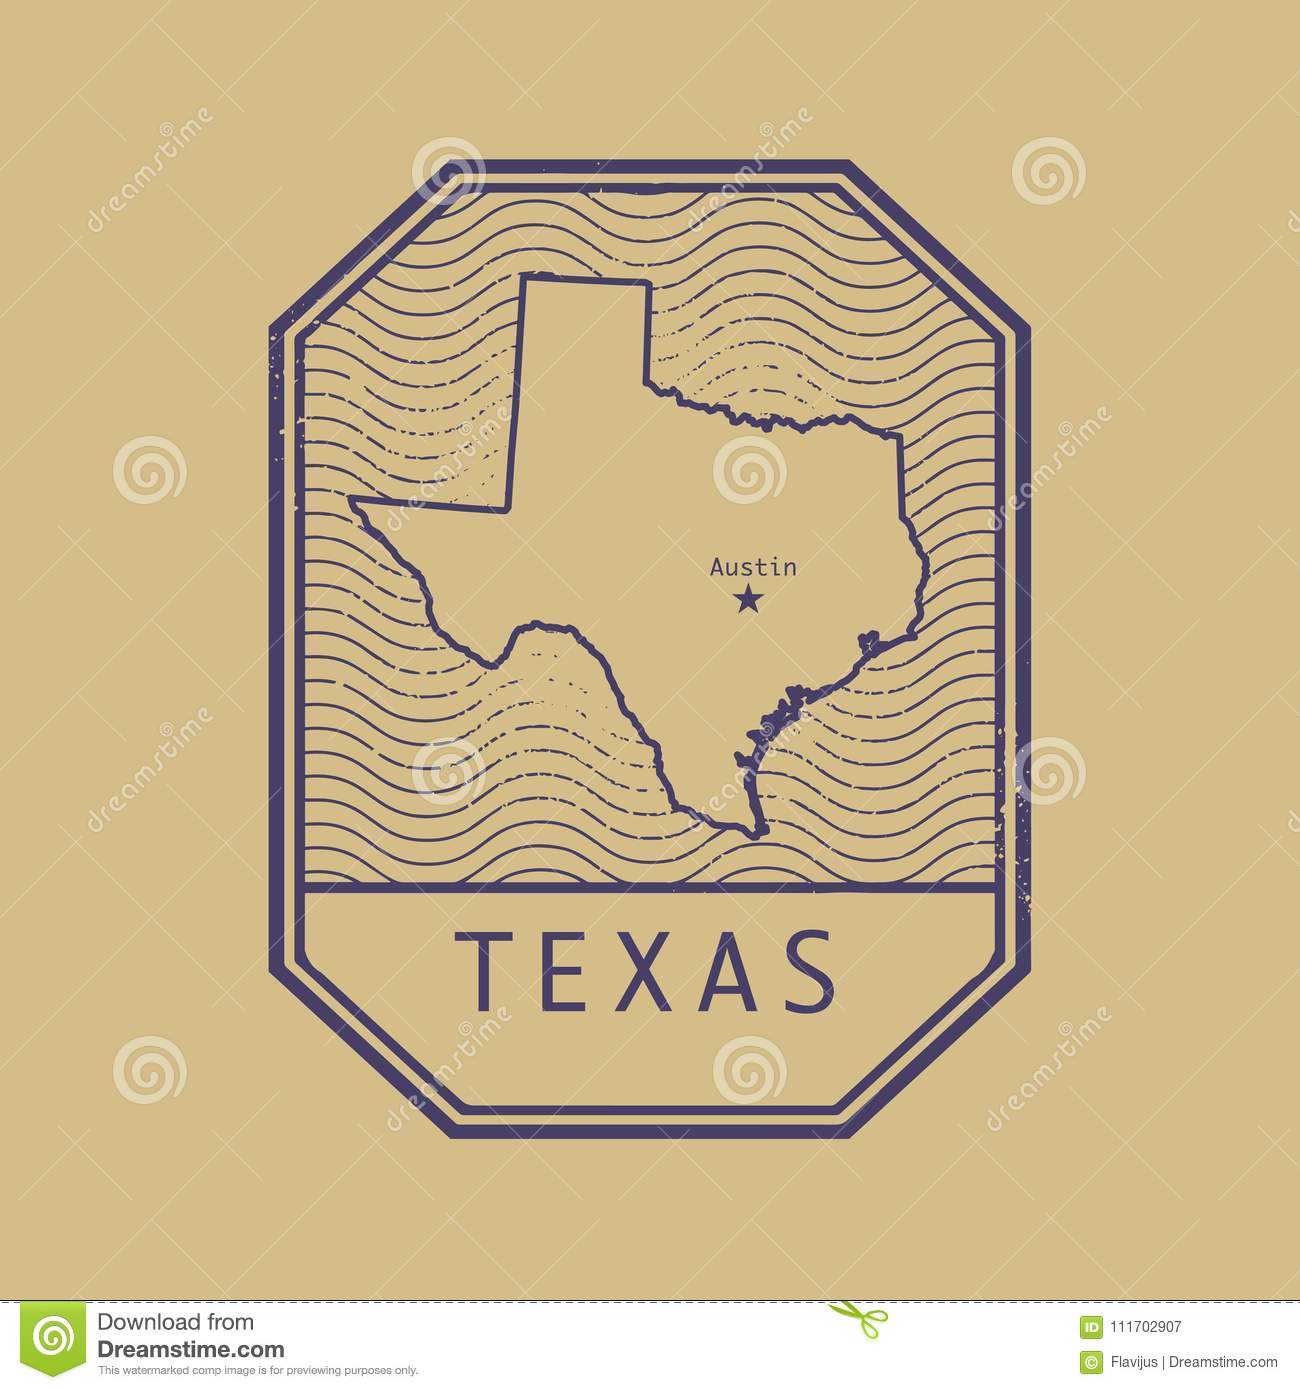 Map Of Texas United States.Stamp With The Name And Map Of Texas United States Stock